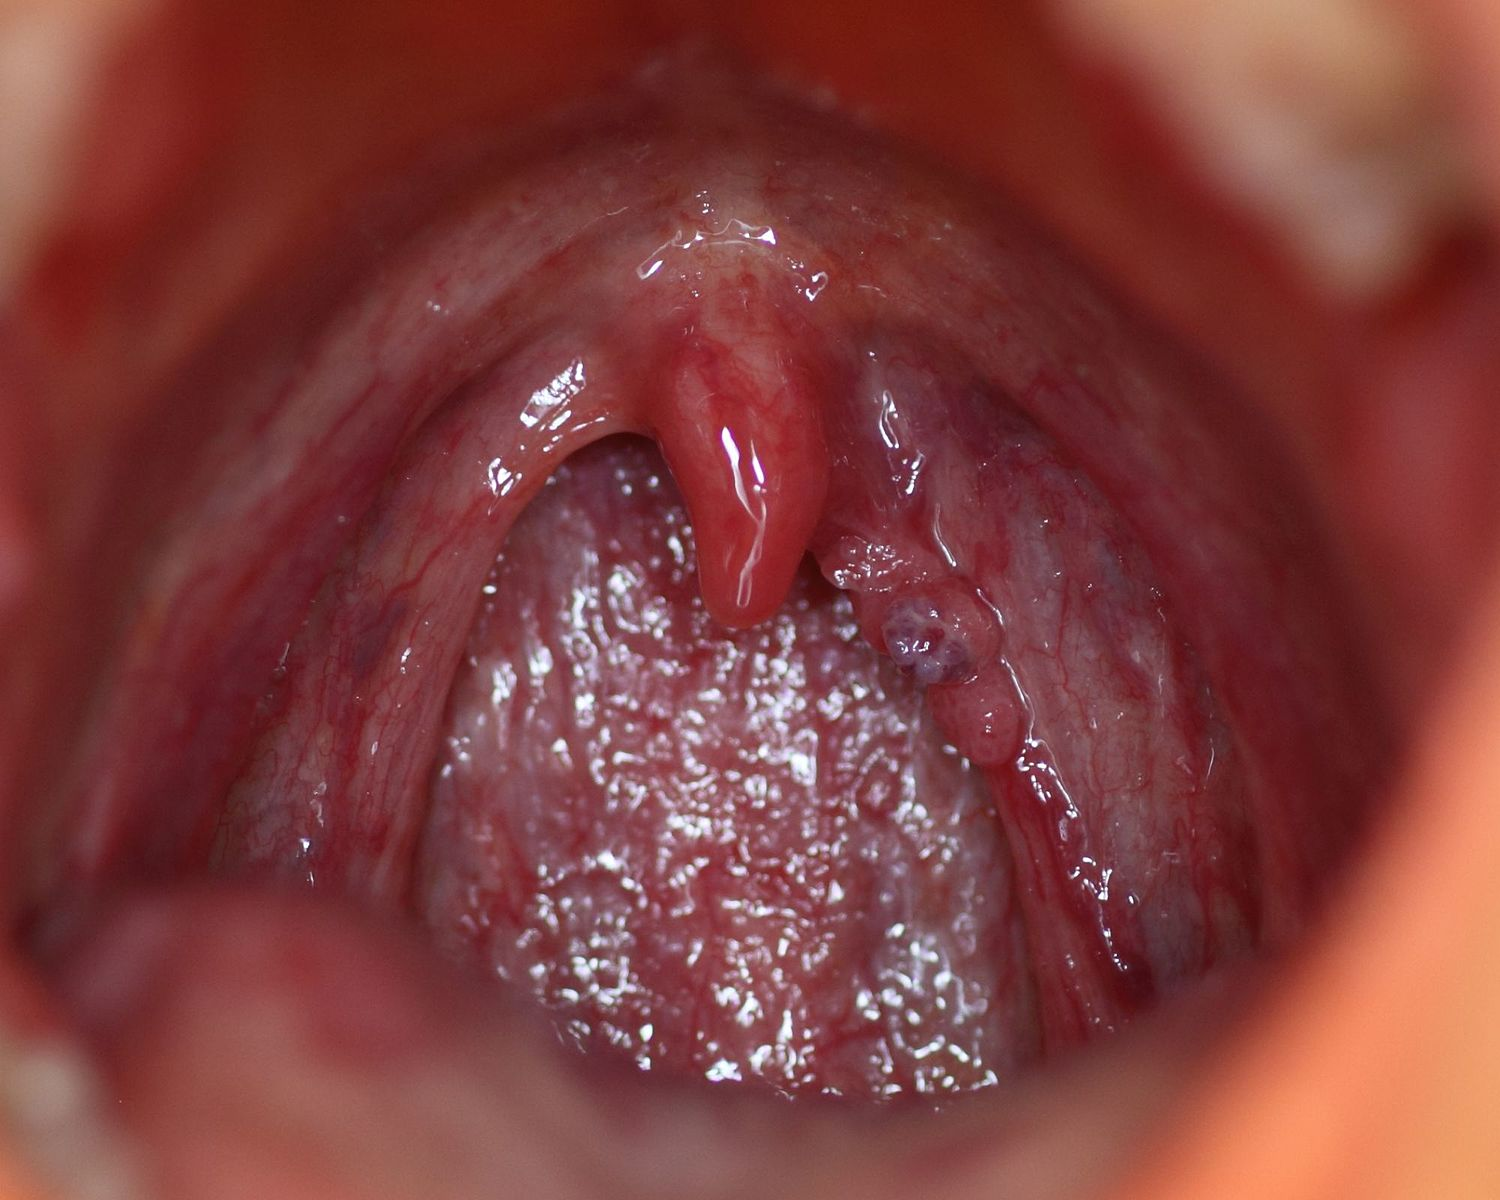 Human papillomavirus infection symptoms in mouth. Hpv vaccine in cervical cancer